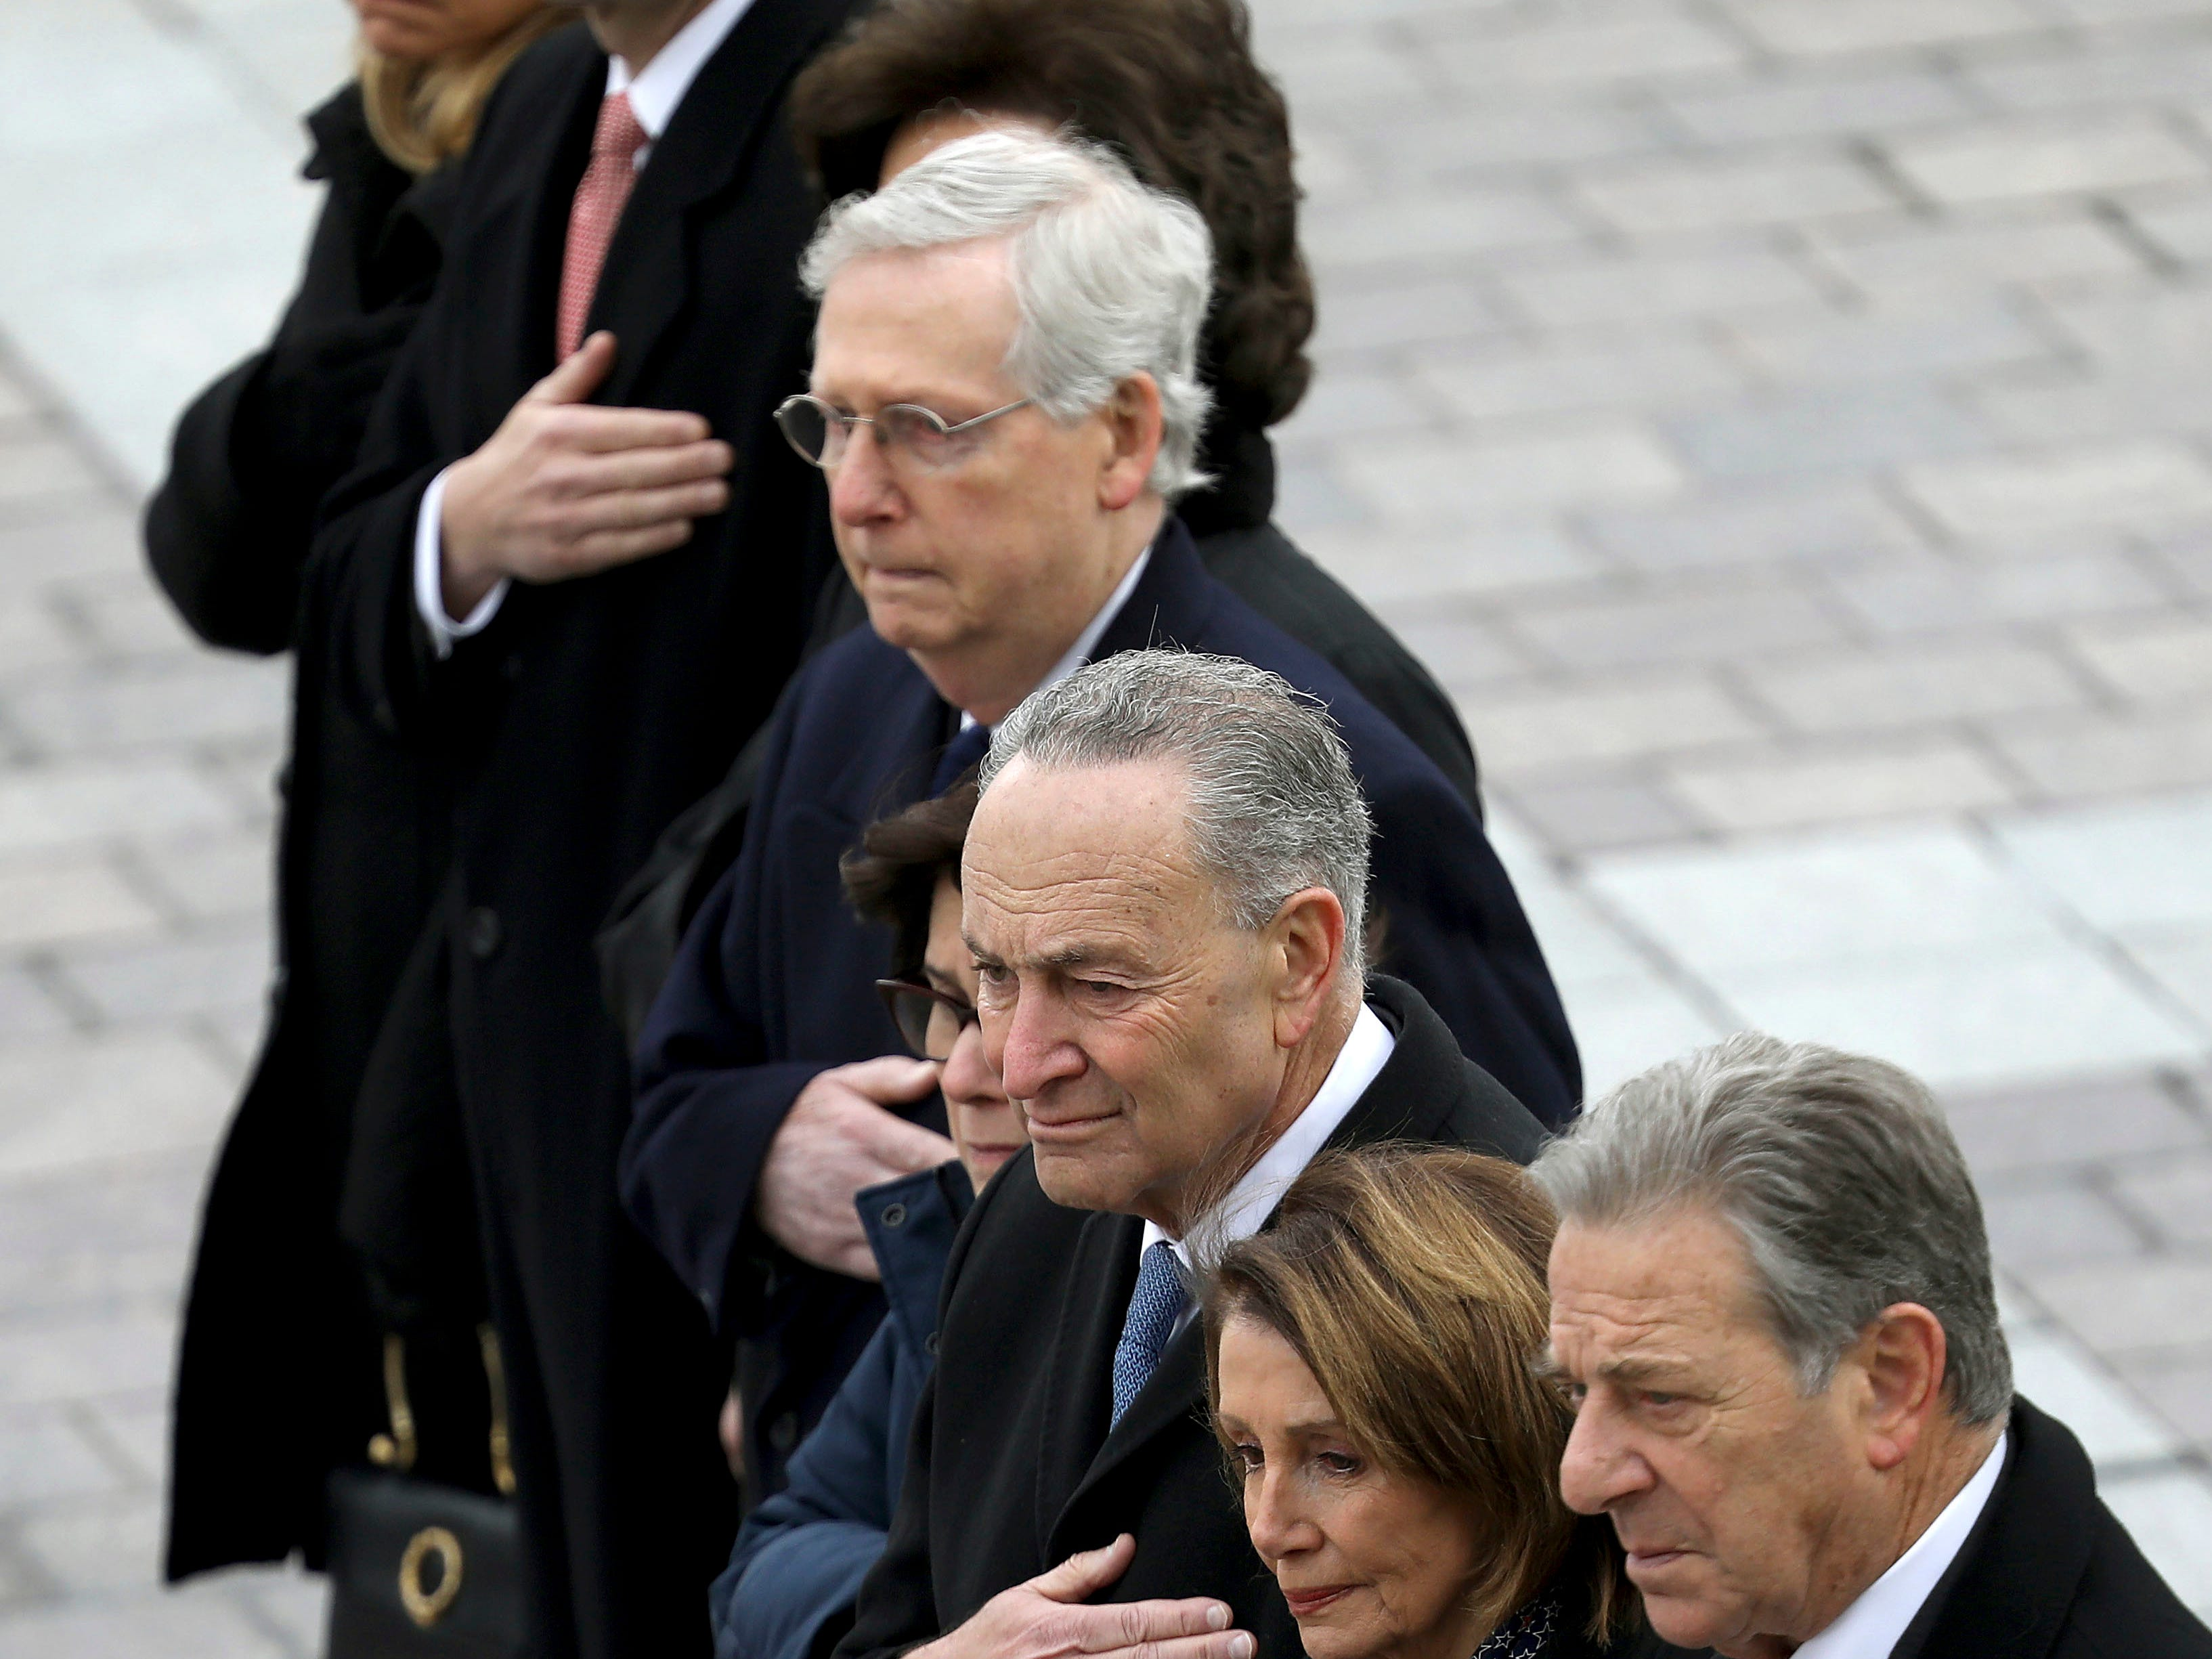 Congressional leaders from left to right, Speaker of the House Paul Ryan, R-Wis, Senate Majority Leader Mitch McConnell, R-Ky., Senate Minority Leader Chuck Schumer, D-NY, and House Minority Leader Nancy Pelosi, D-Calif., watch as a U.S. military honor guard carries the flag-draped casket of former U.S. President George H. W. Bush from the U.S. Capitol Wednesday, Dec. 5, 2018, in Washington.